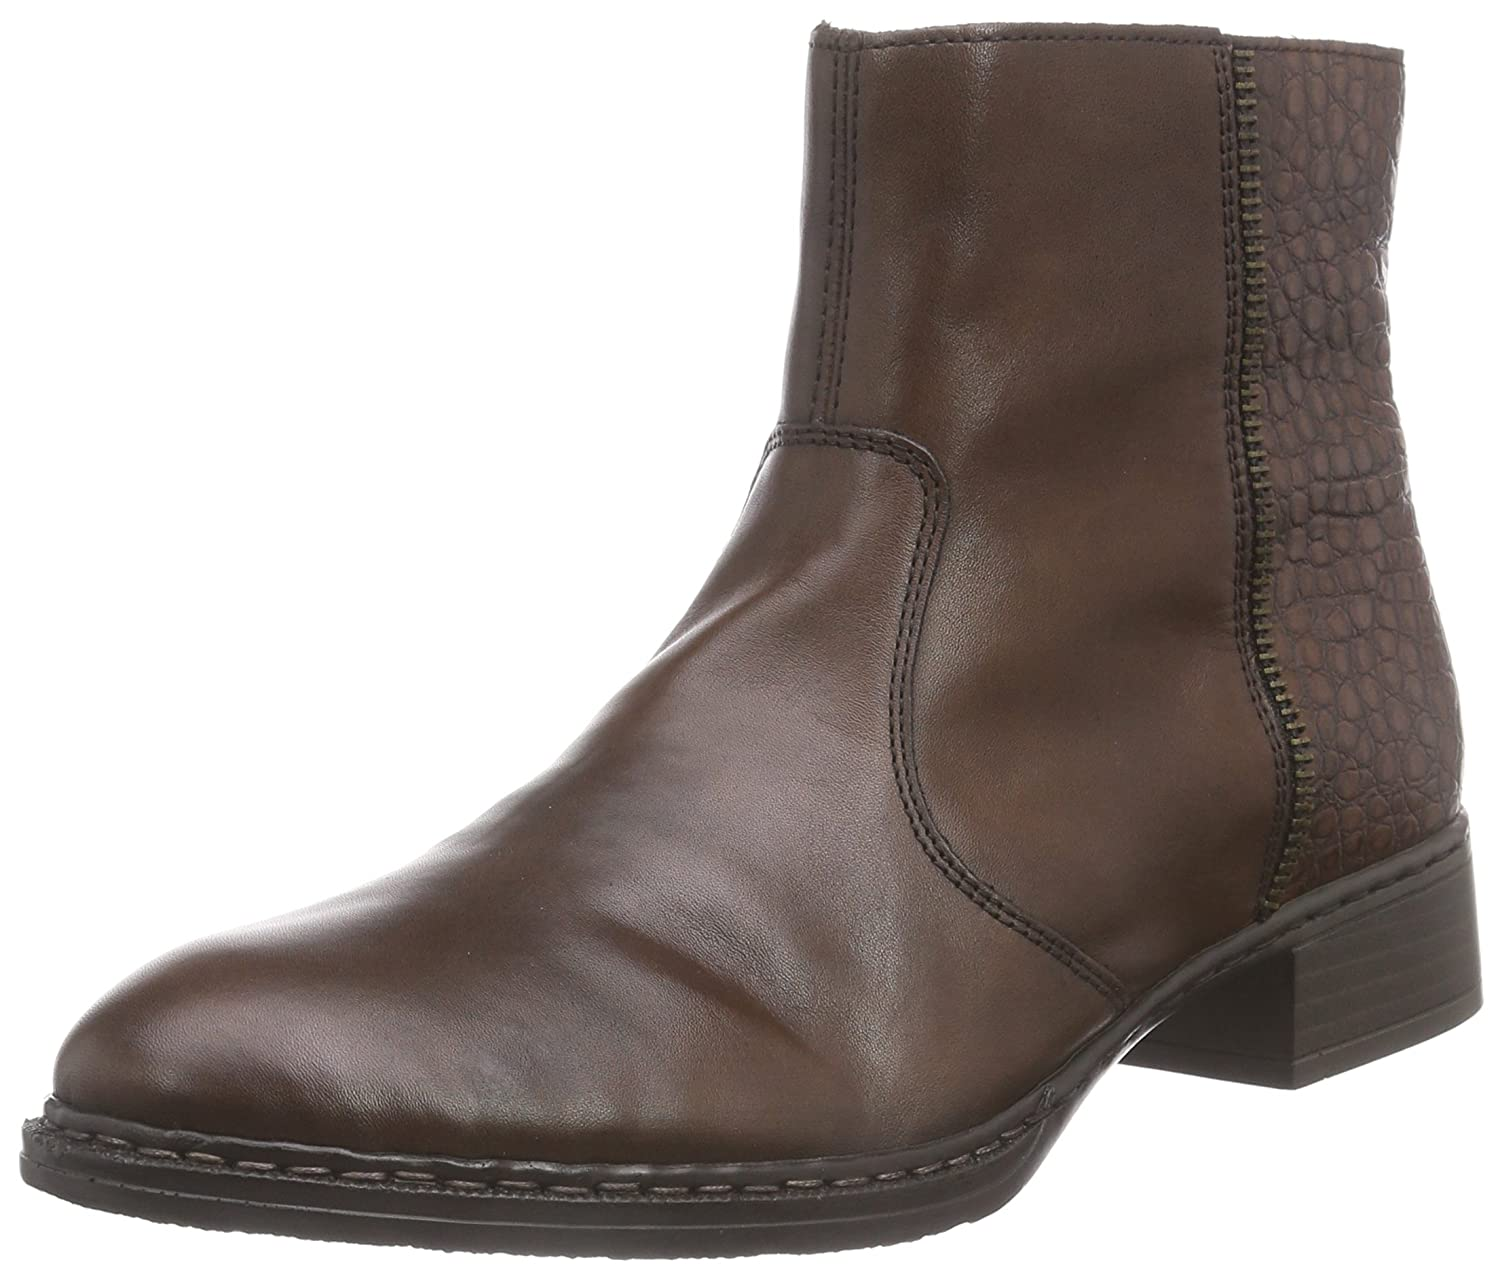 5ad1c3d0b5863 Rieker 73490-26, Women's Chukka Boots: Amazon.co.uk: Shoes & Bags